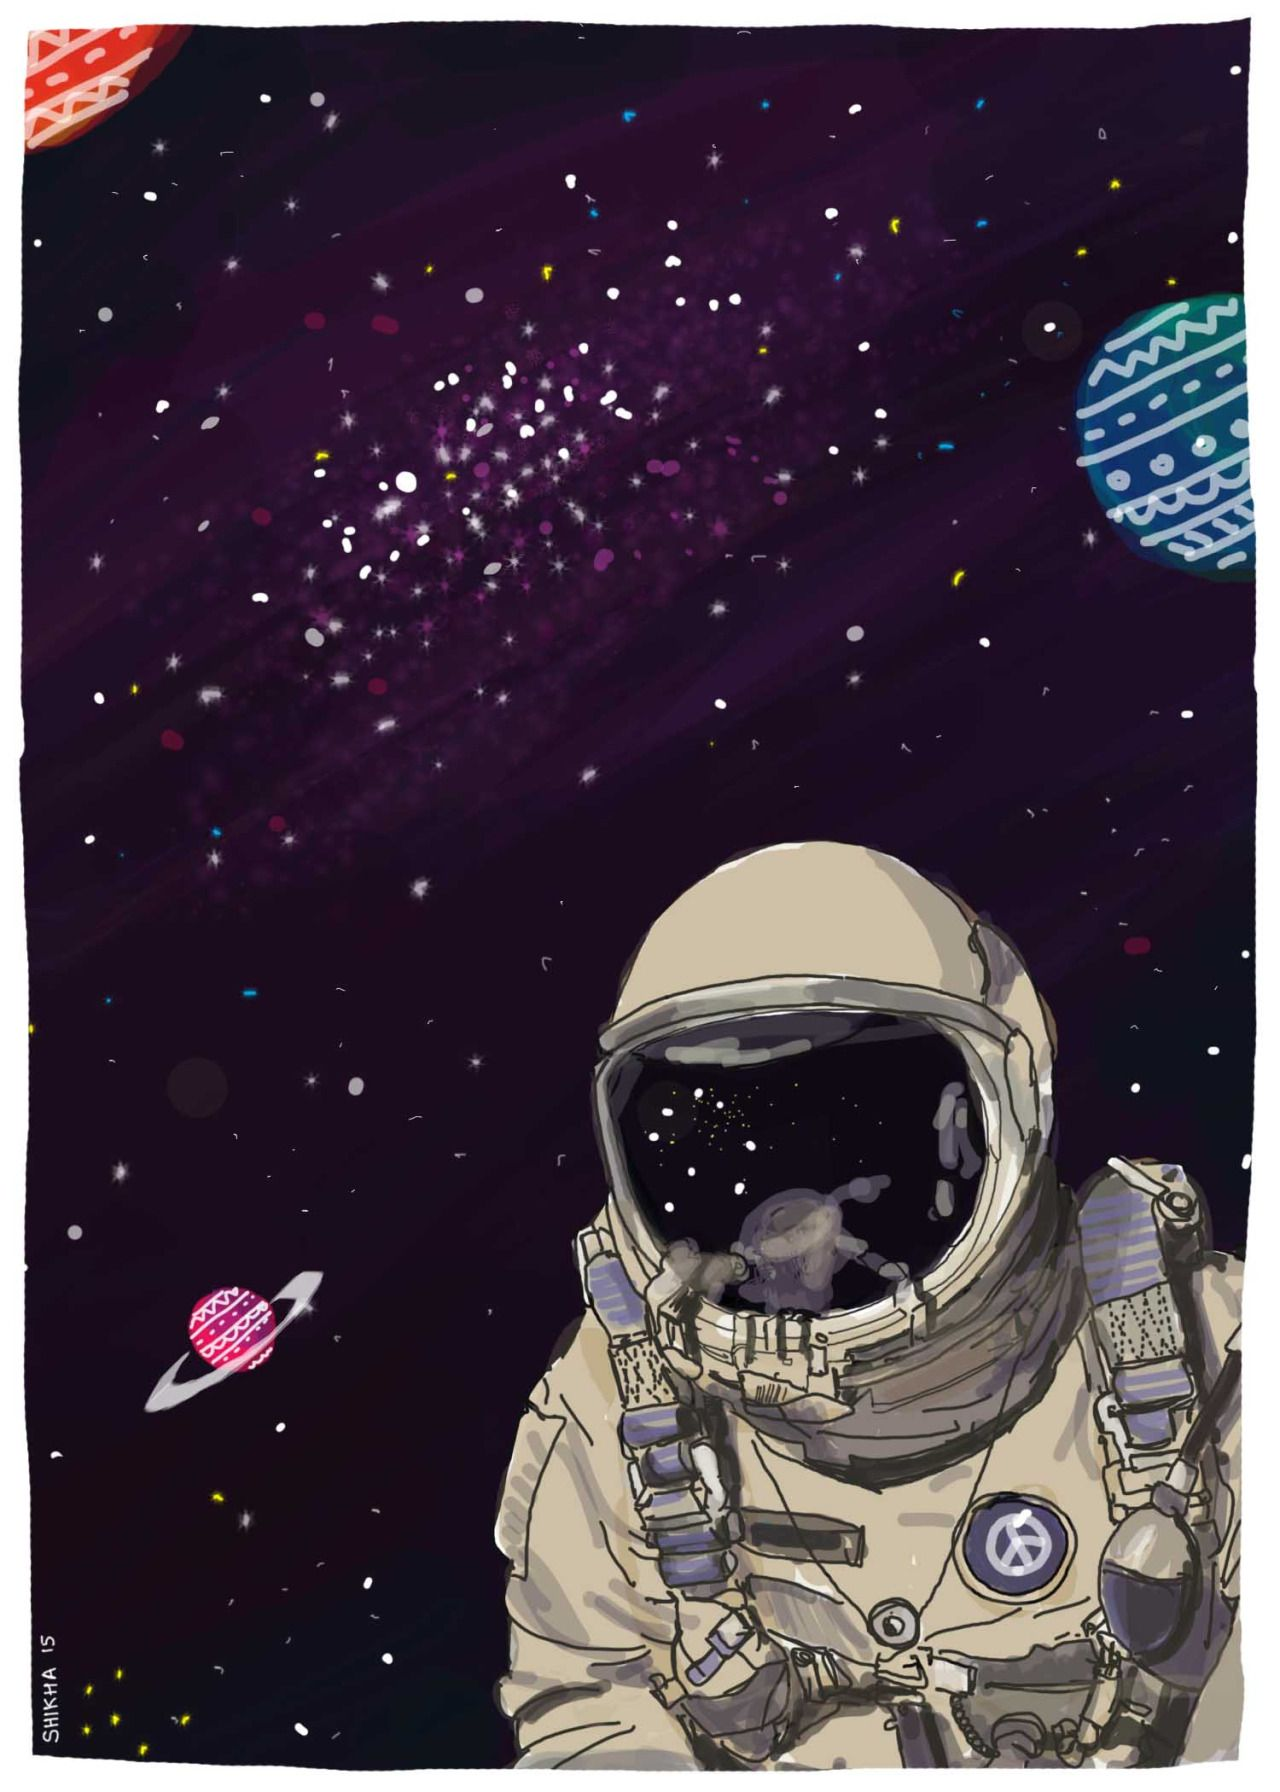 Astronaut In Peace Space Illustration 2 Ilustracion Del